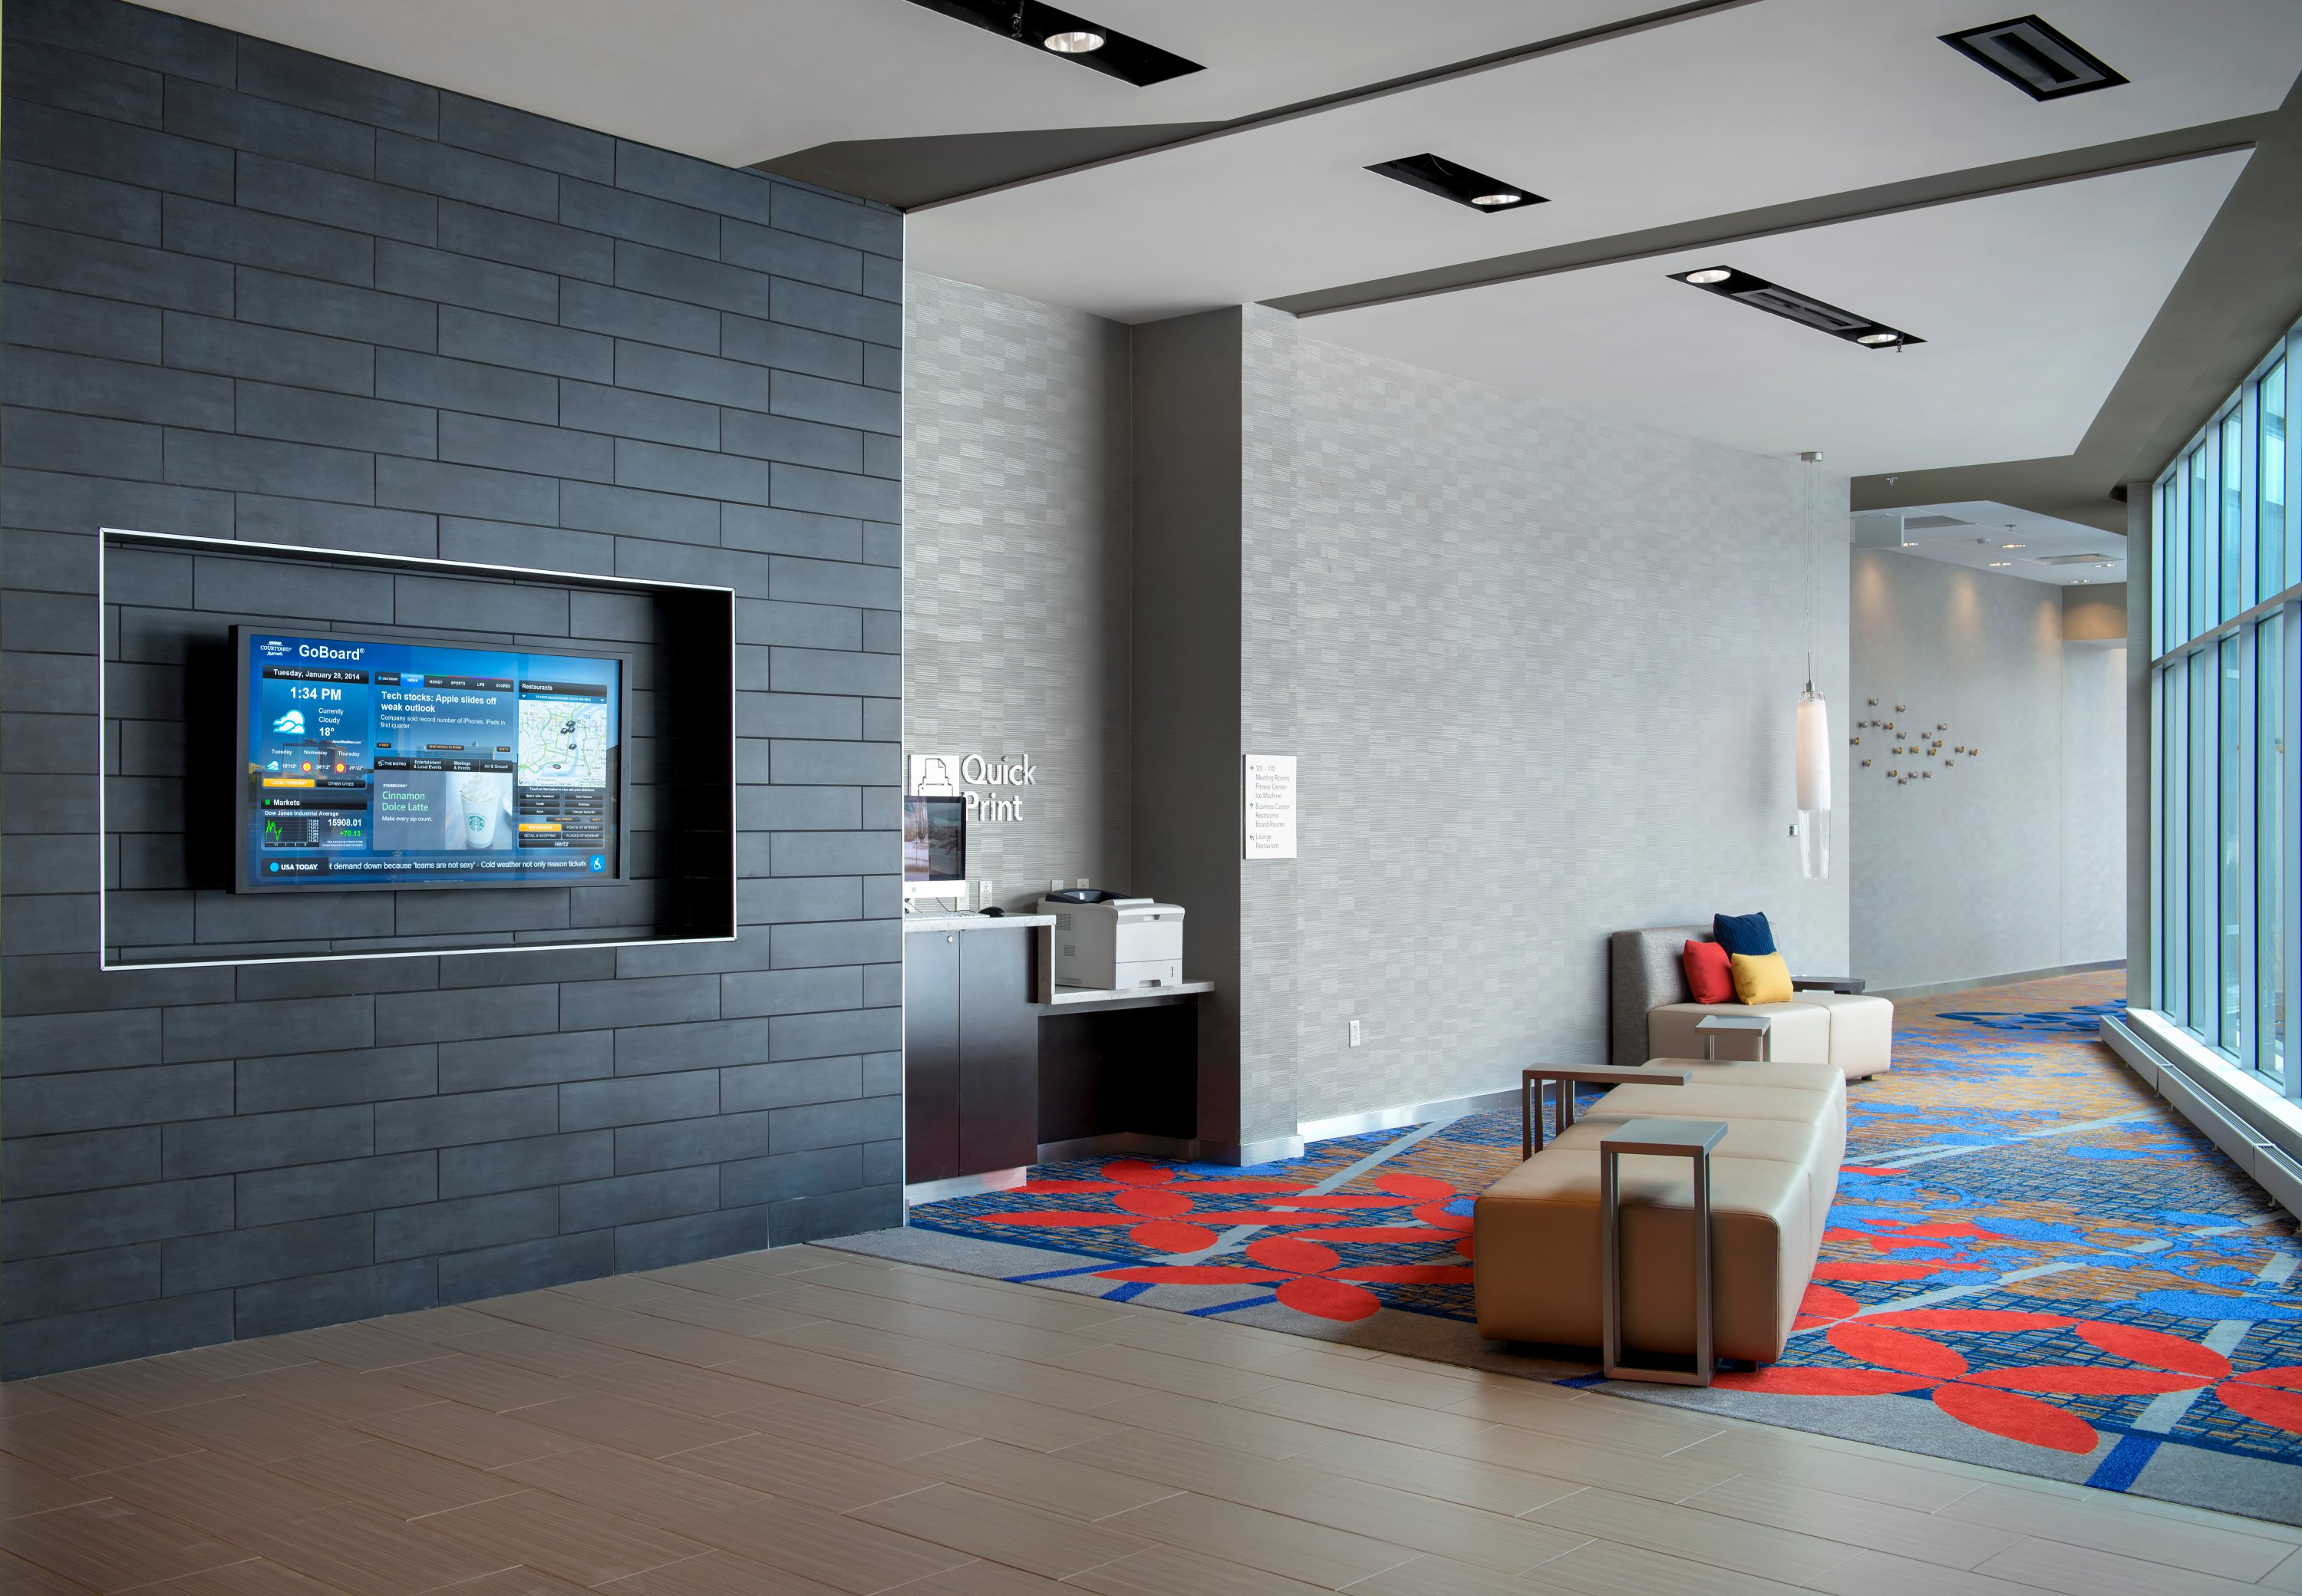 Courtyard by Marriott Philadelphia South at The Navy Yard image 12